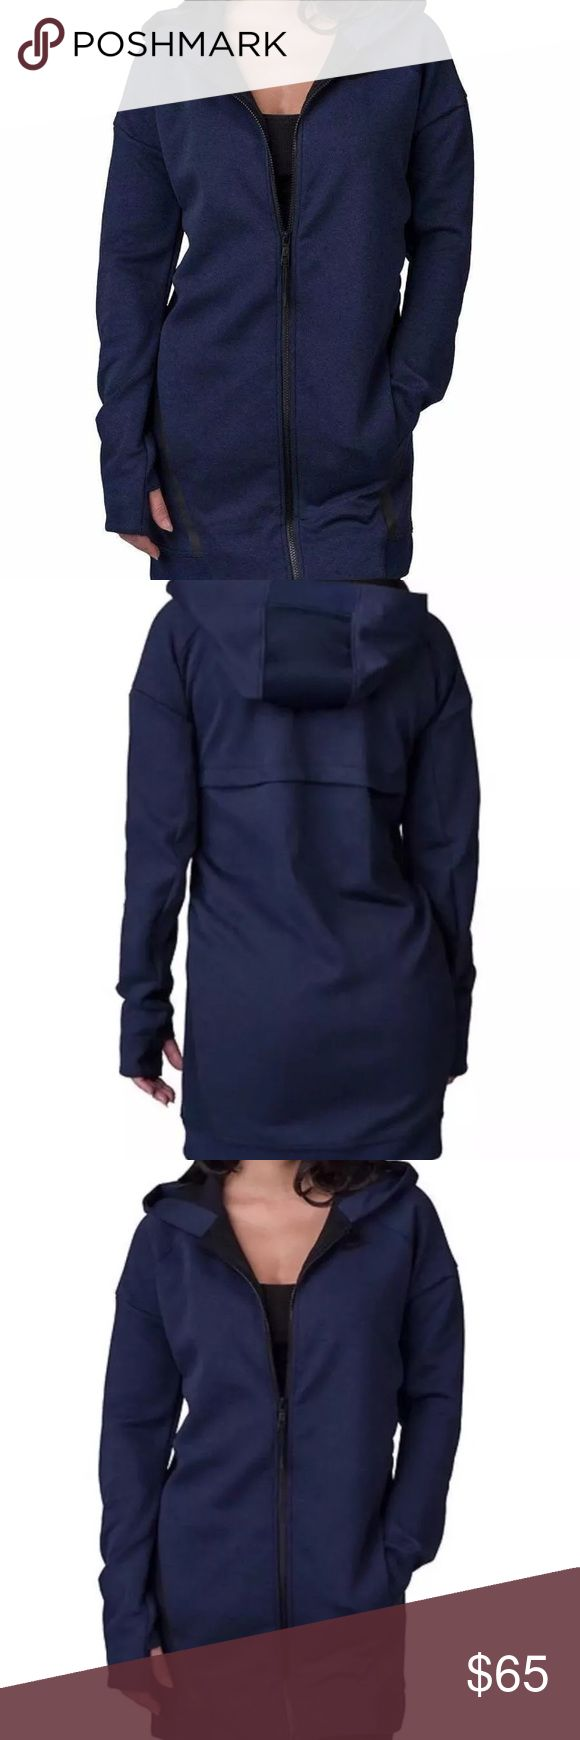 NWT nike tech cocoon jacket navy New with tags Nike tech cocoon jacket Nike Tops Sweatshirts & Hoodies